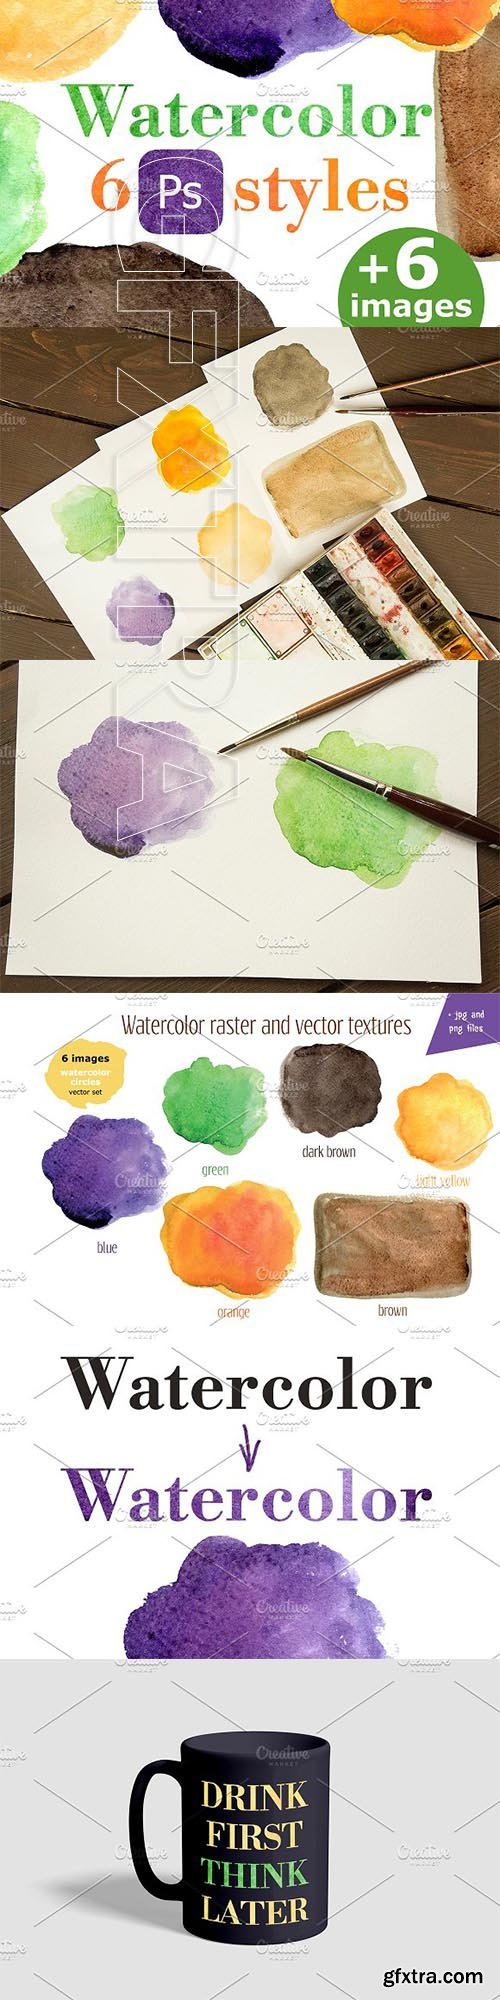 CreativeMarket - Watercolor PC style for text, object 3210186